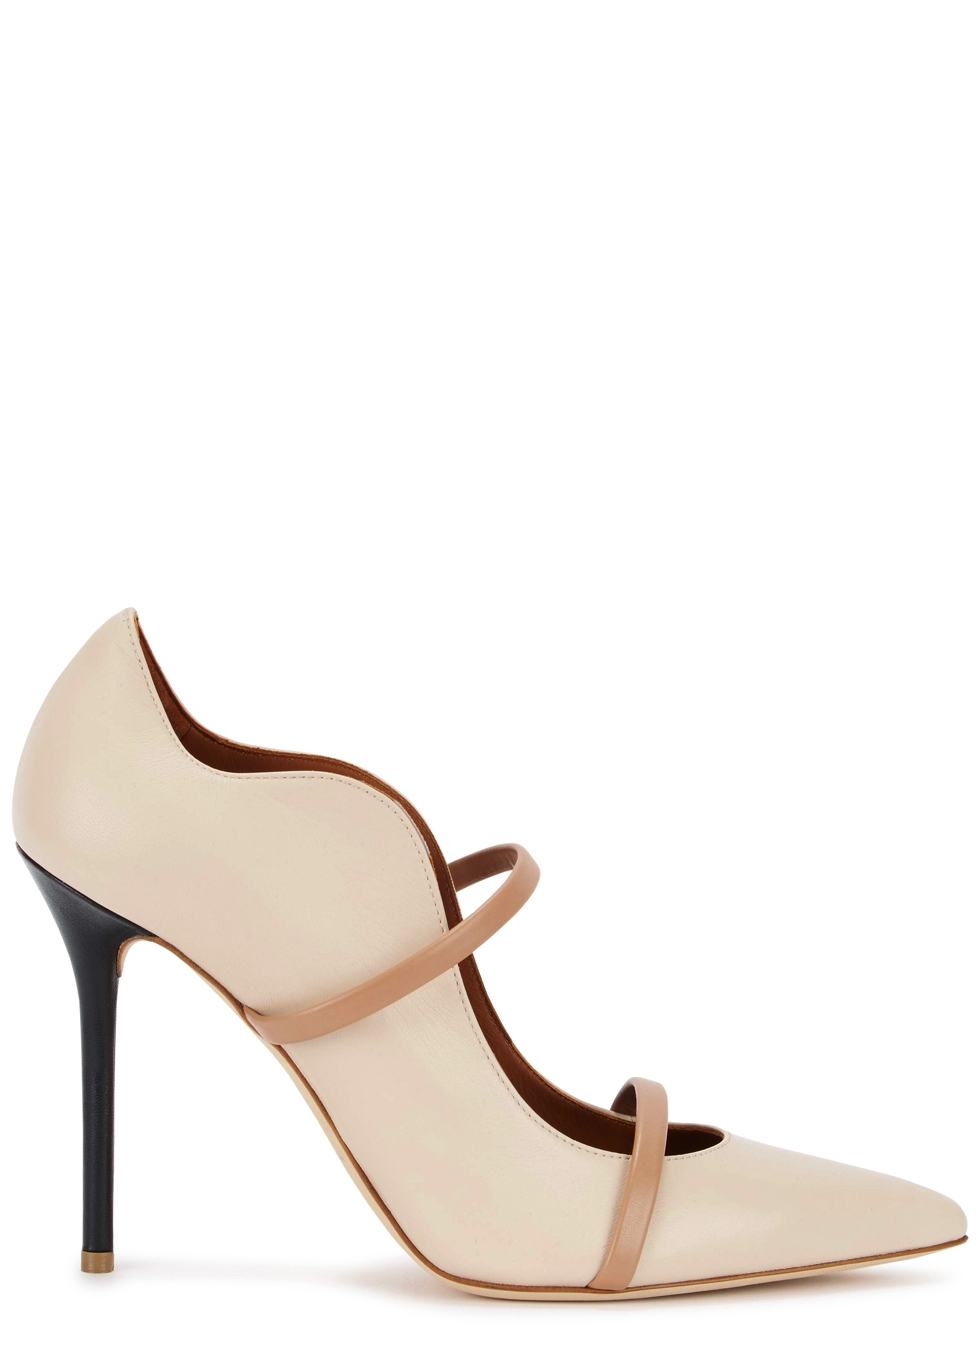 Maureen 100 Stone Leather Mules in Nude